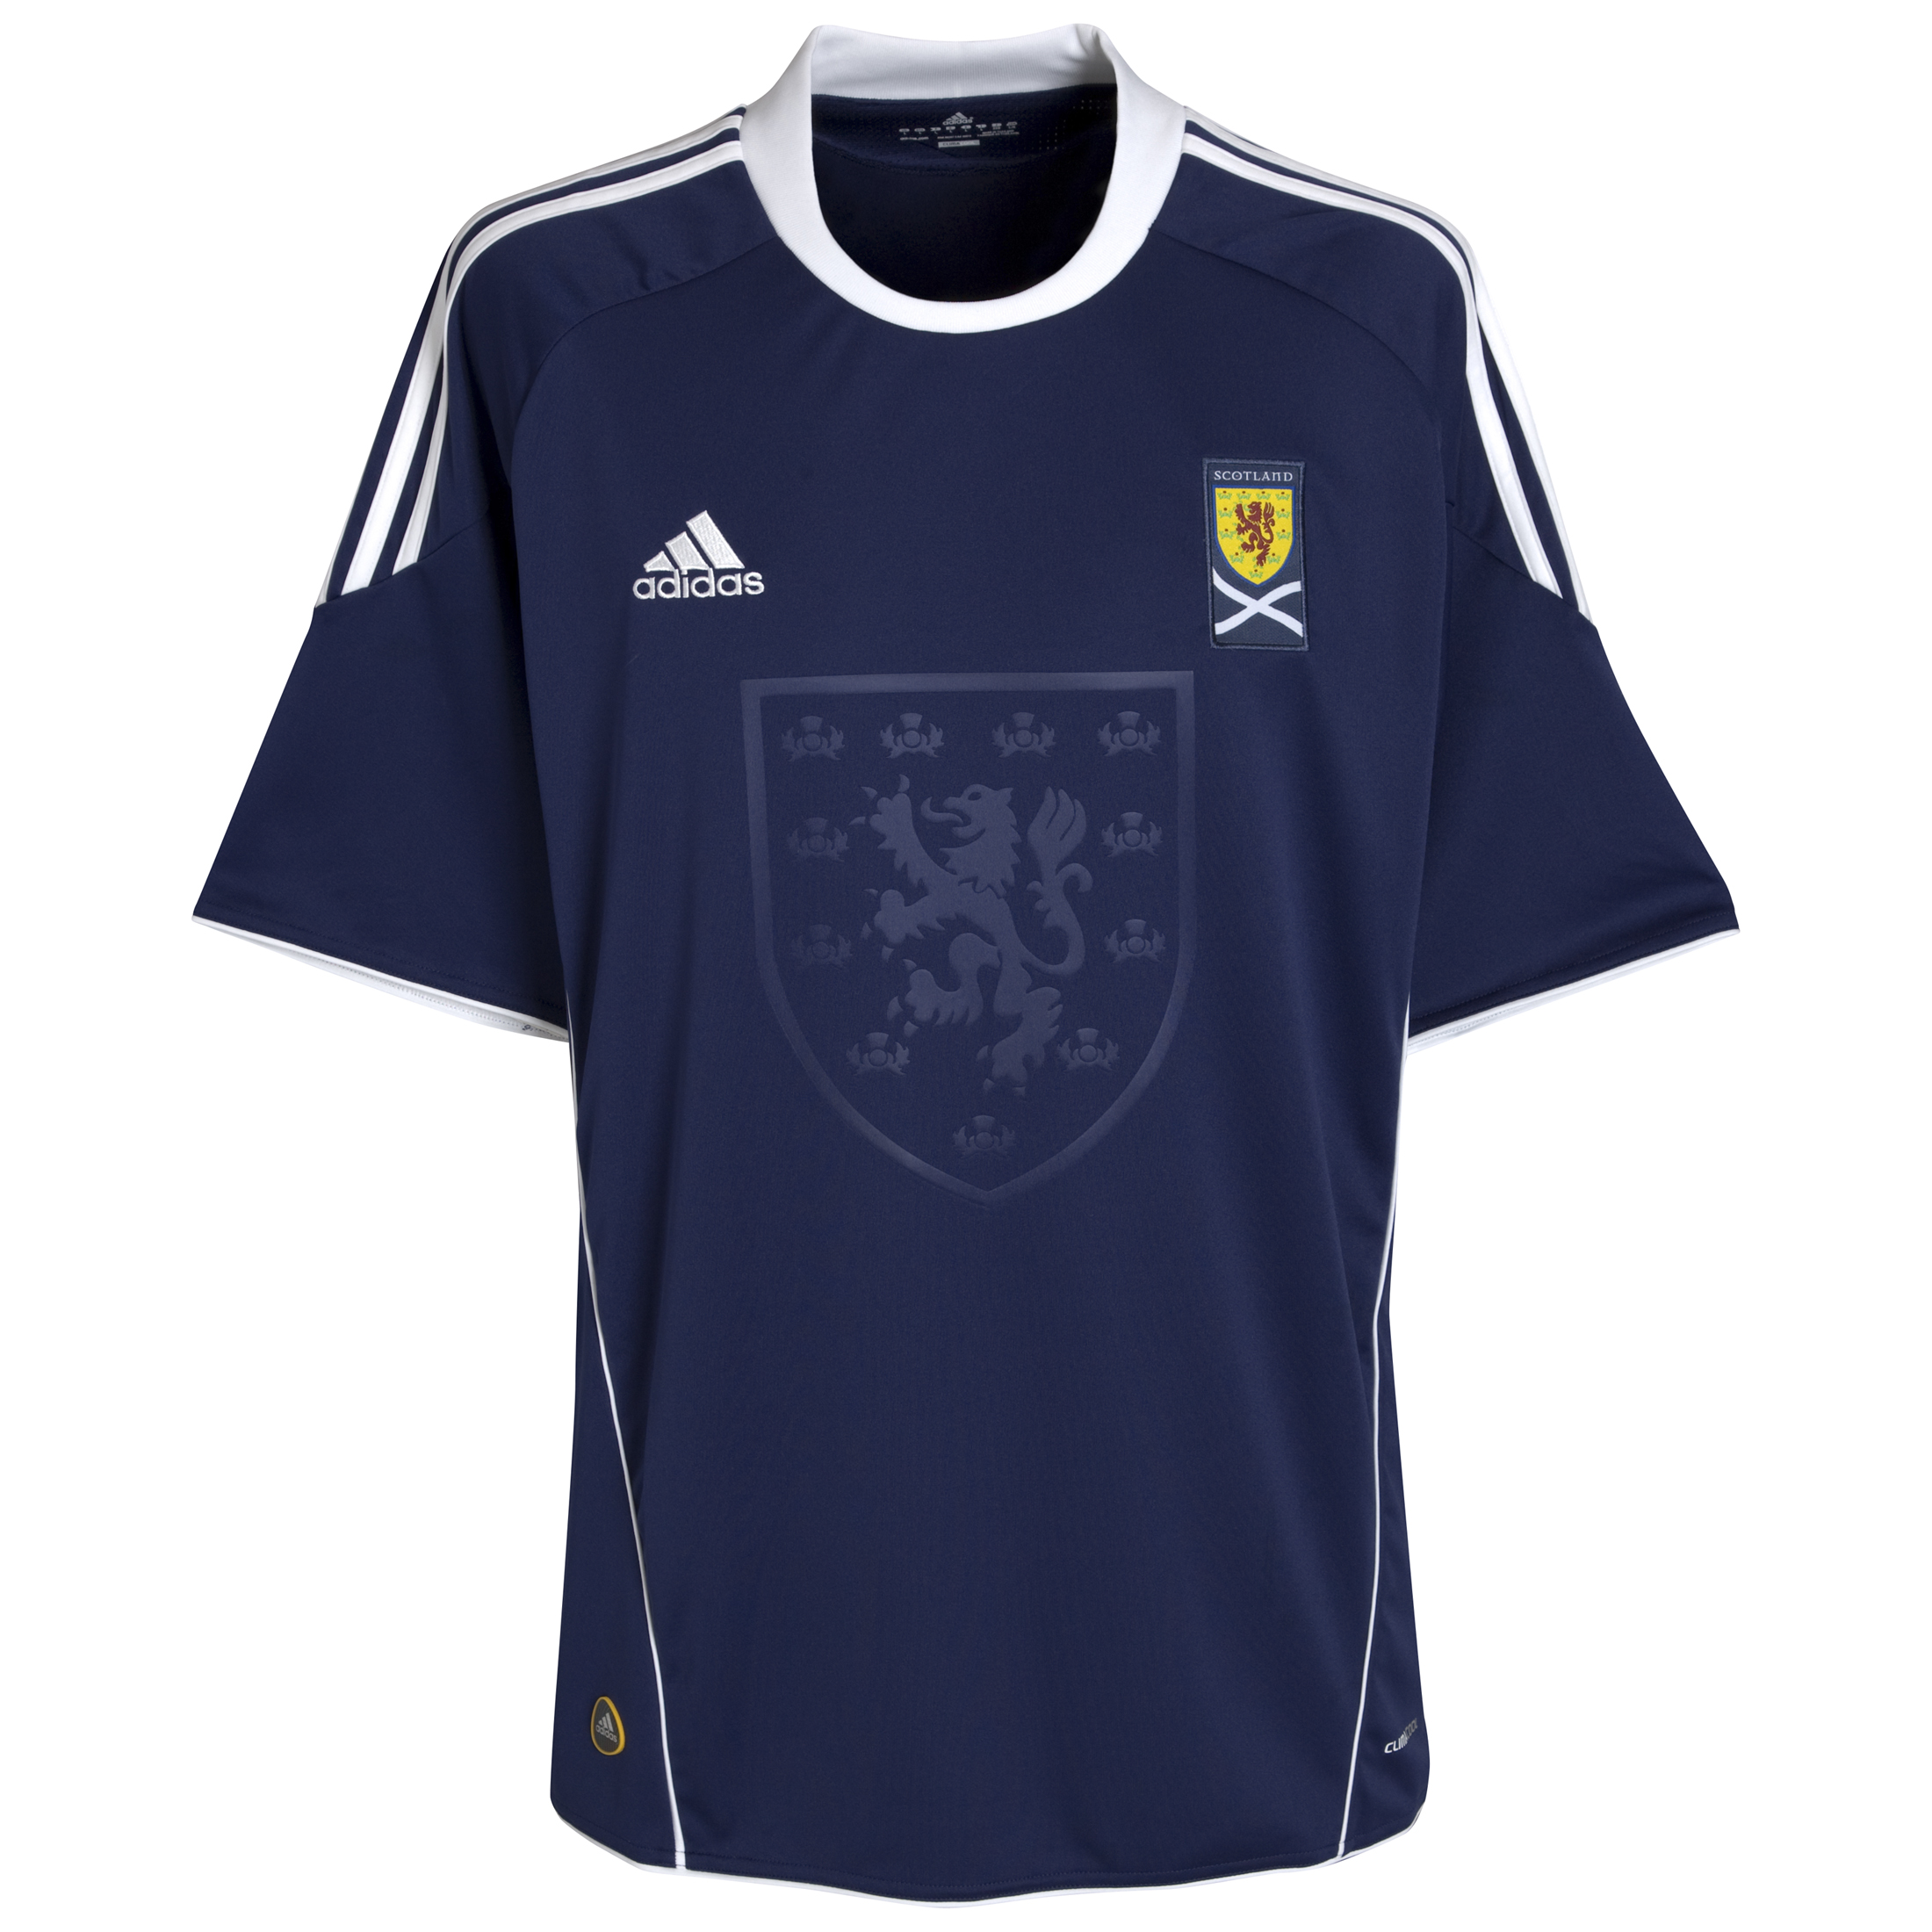 Scotland Home Shirt 2010/11 Kids